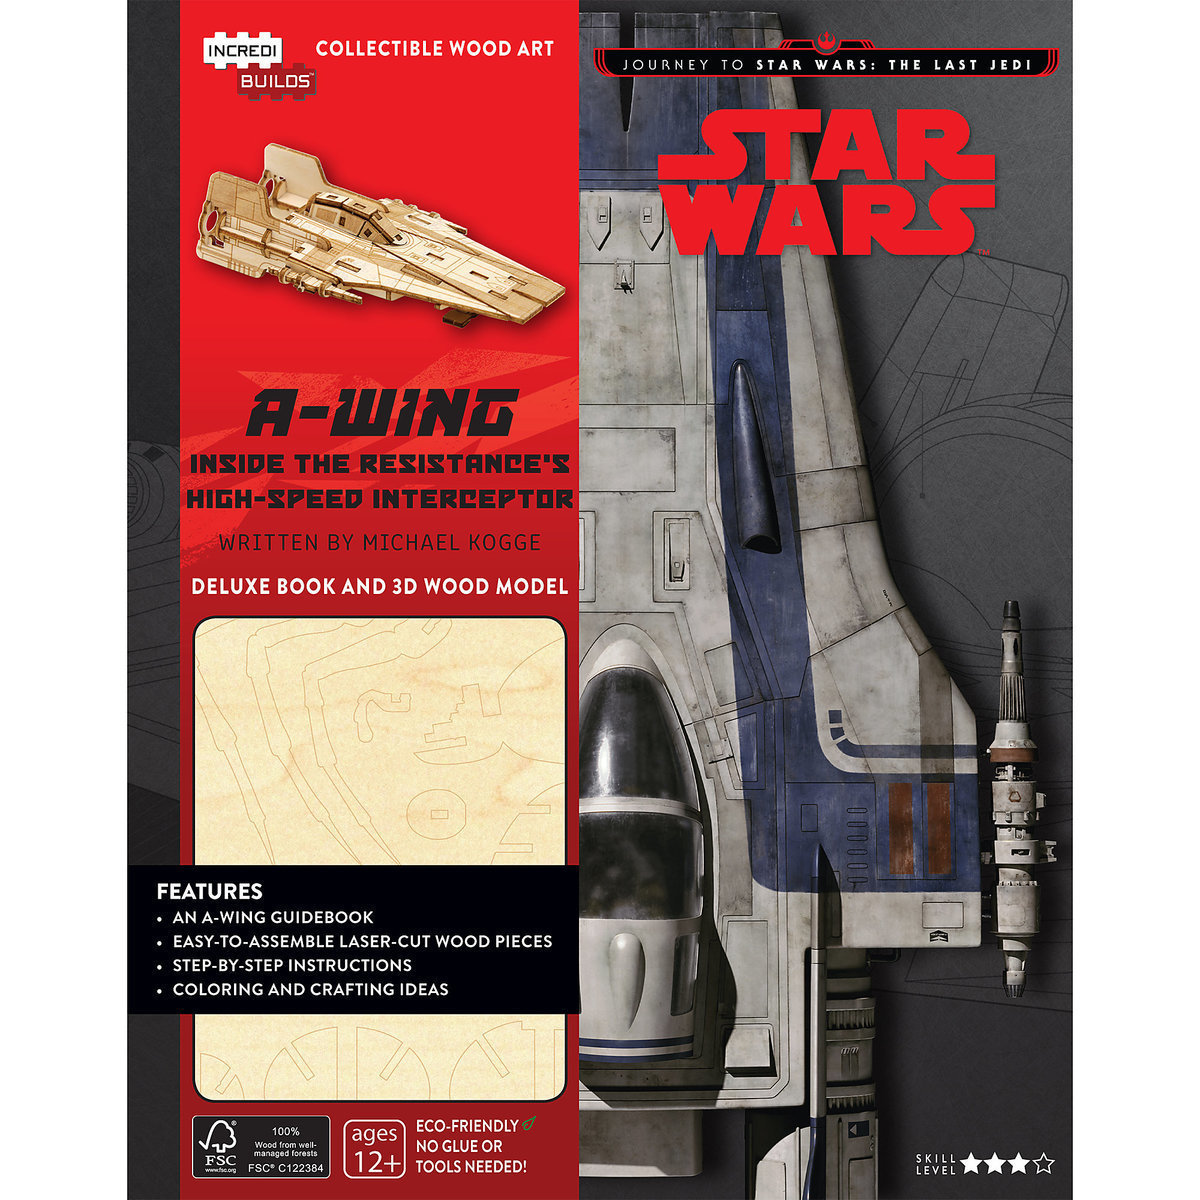 ○送料込○ スターウォーズ IncrediBuilds: Star Wars: A-Wing